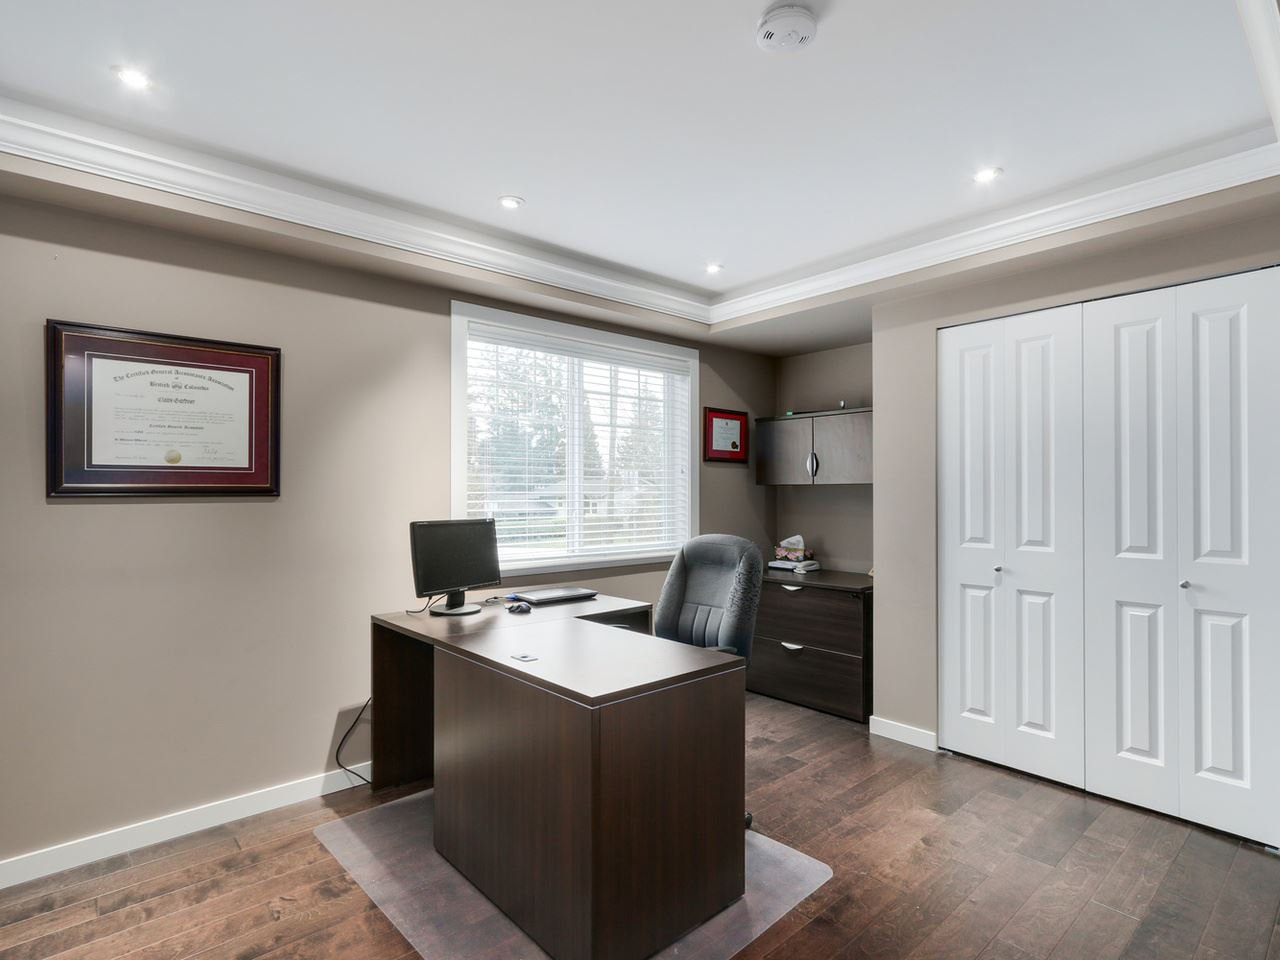 Photo 10: Photos: 826 COYLTON PLACE in Port Moody: Glenayre House for sale : MLS®# R2042044